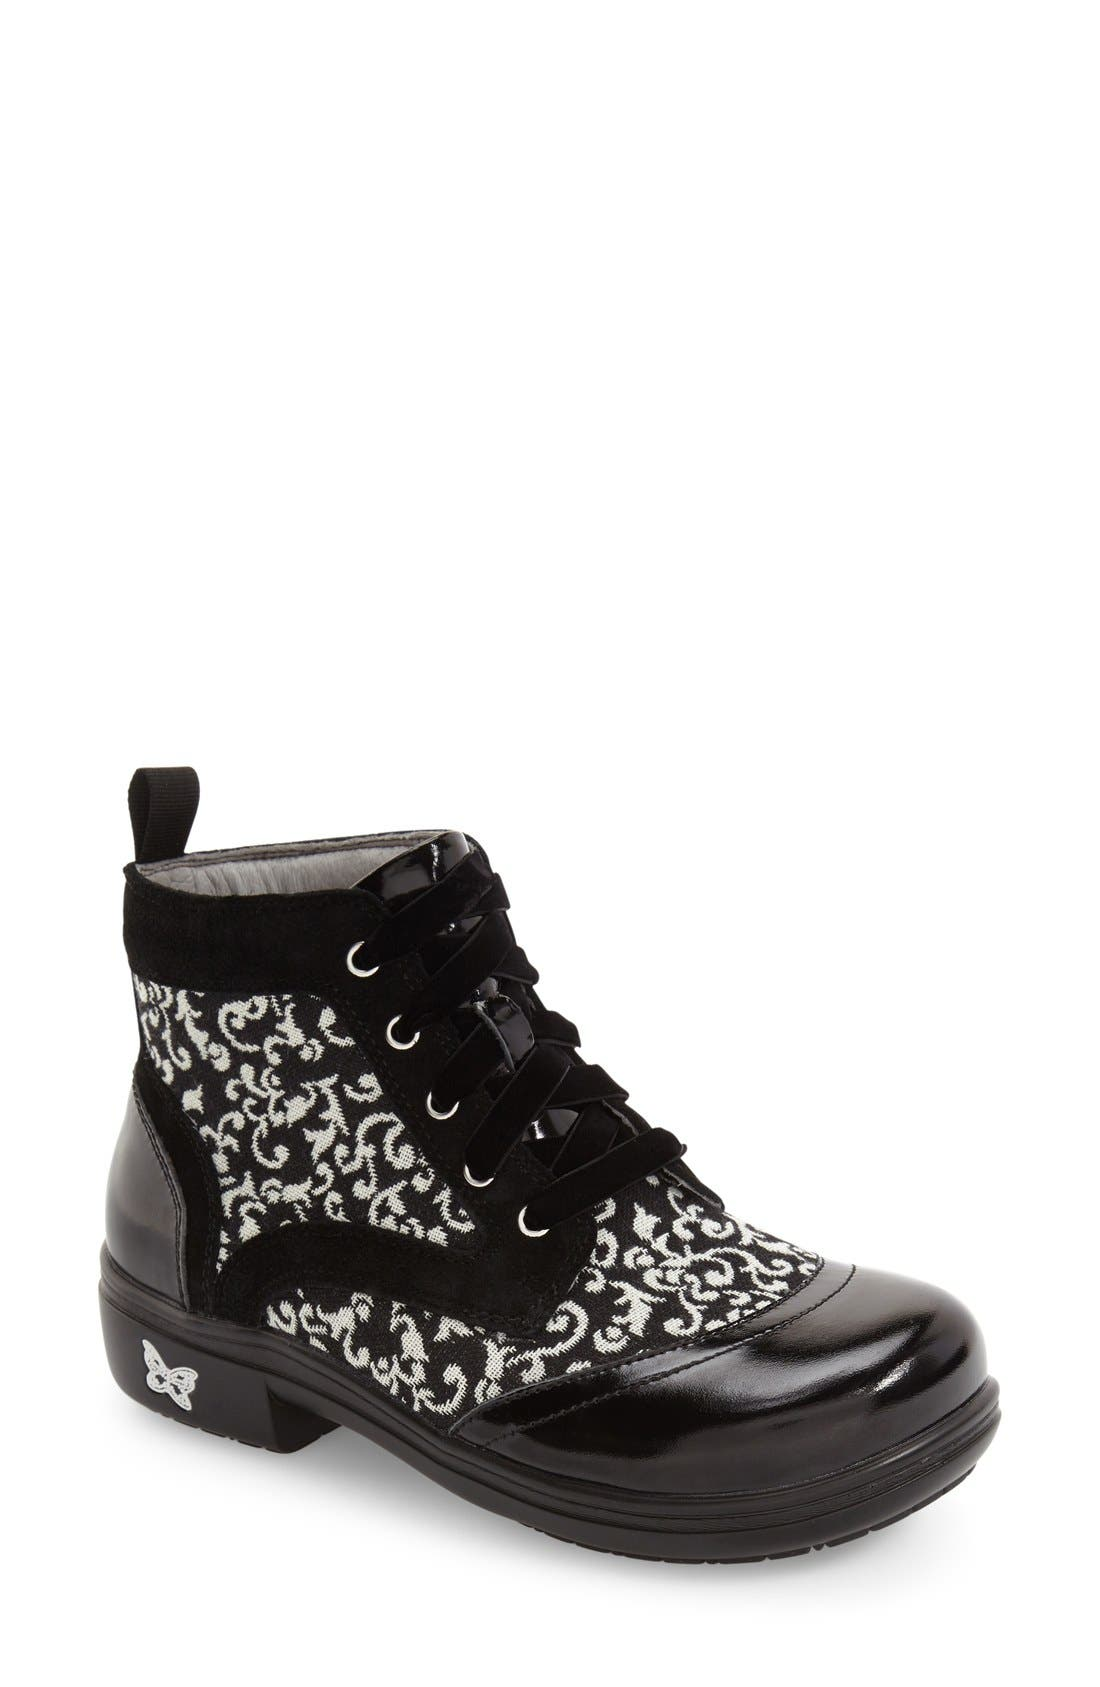 Alternate Image 1 Selected - Alegria 'Kylie' Leather Boot (Women)